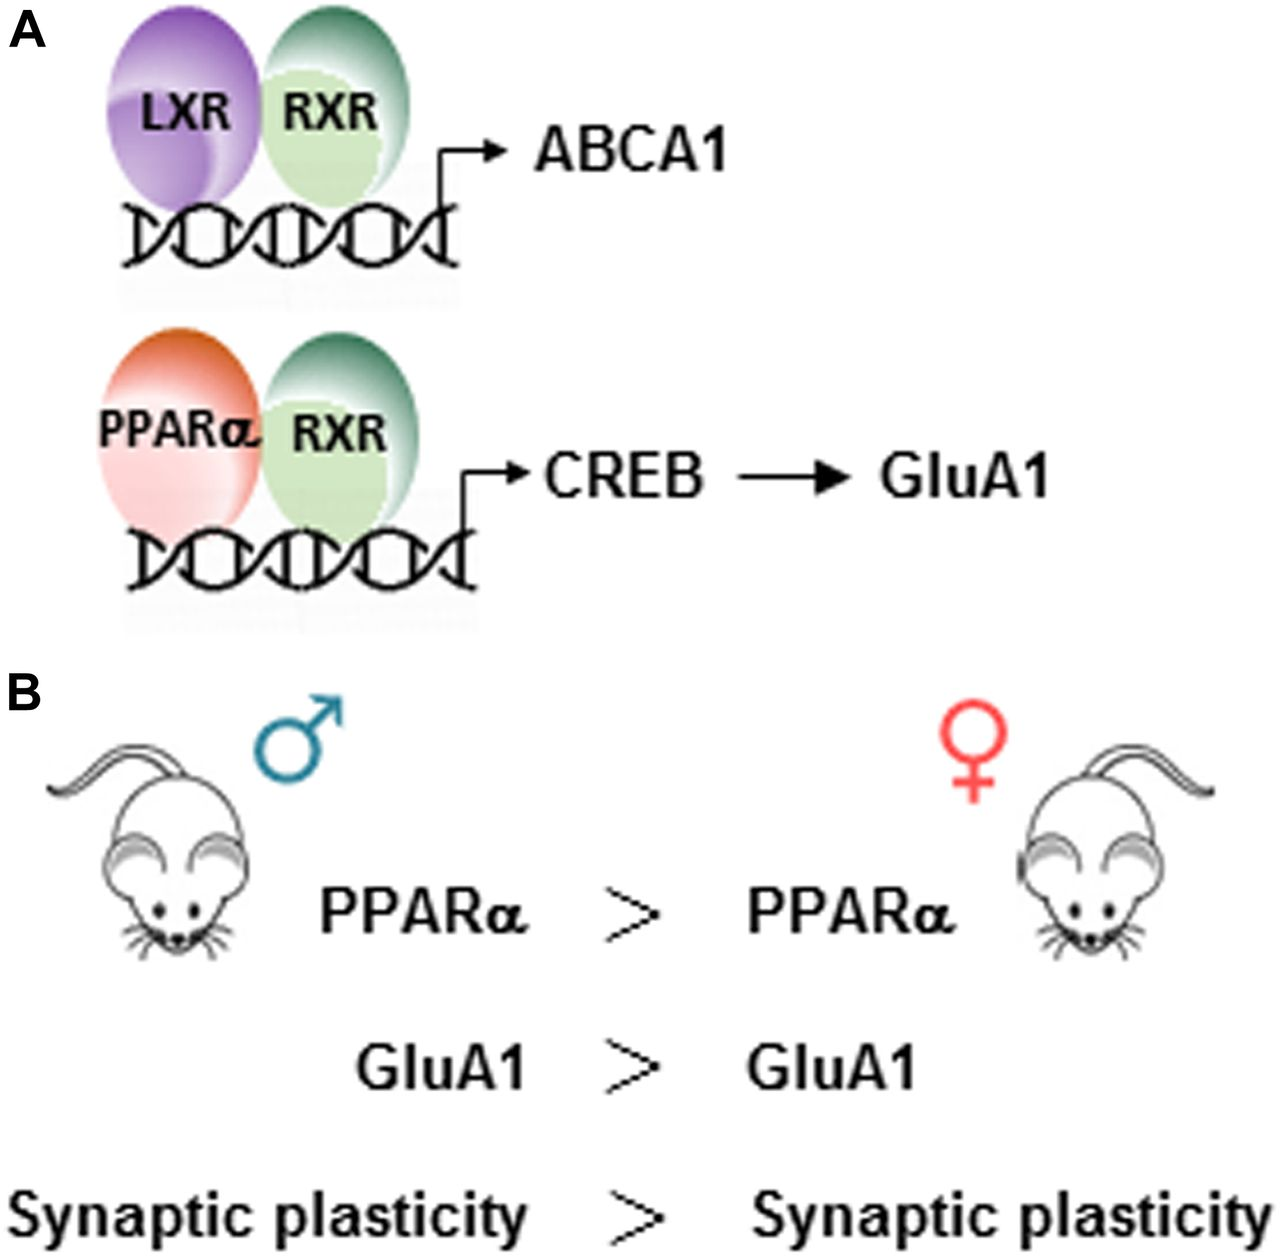 Sex-regulated Gene Dosage Effect Of PPARα On Synaptic